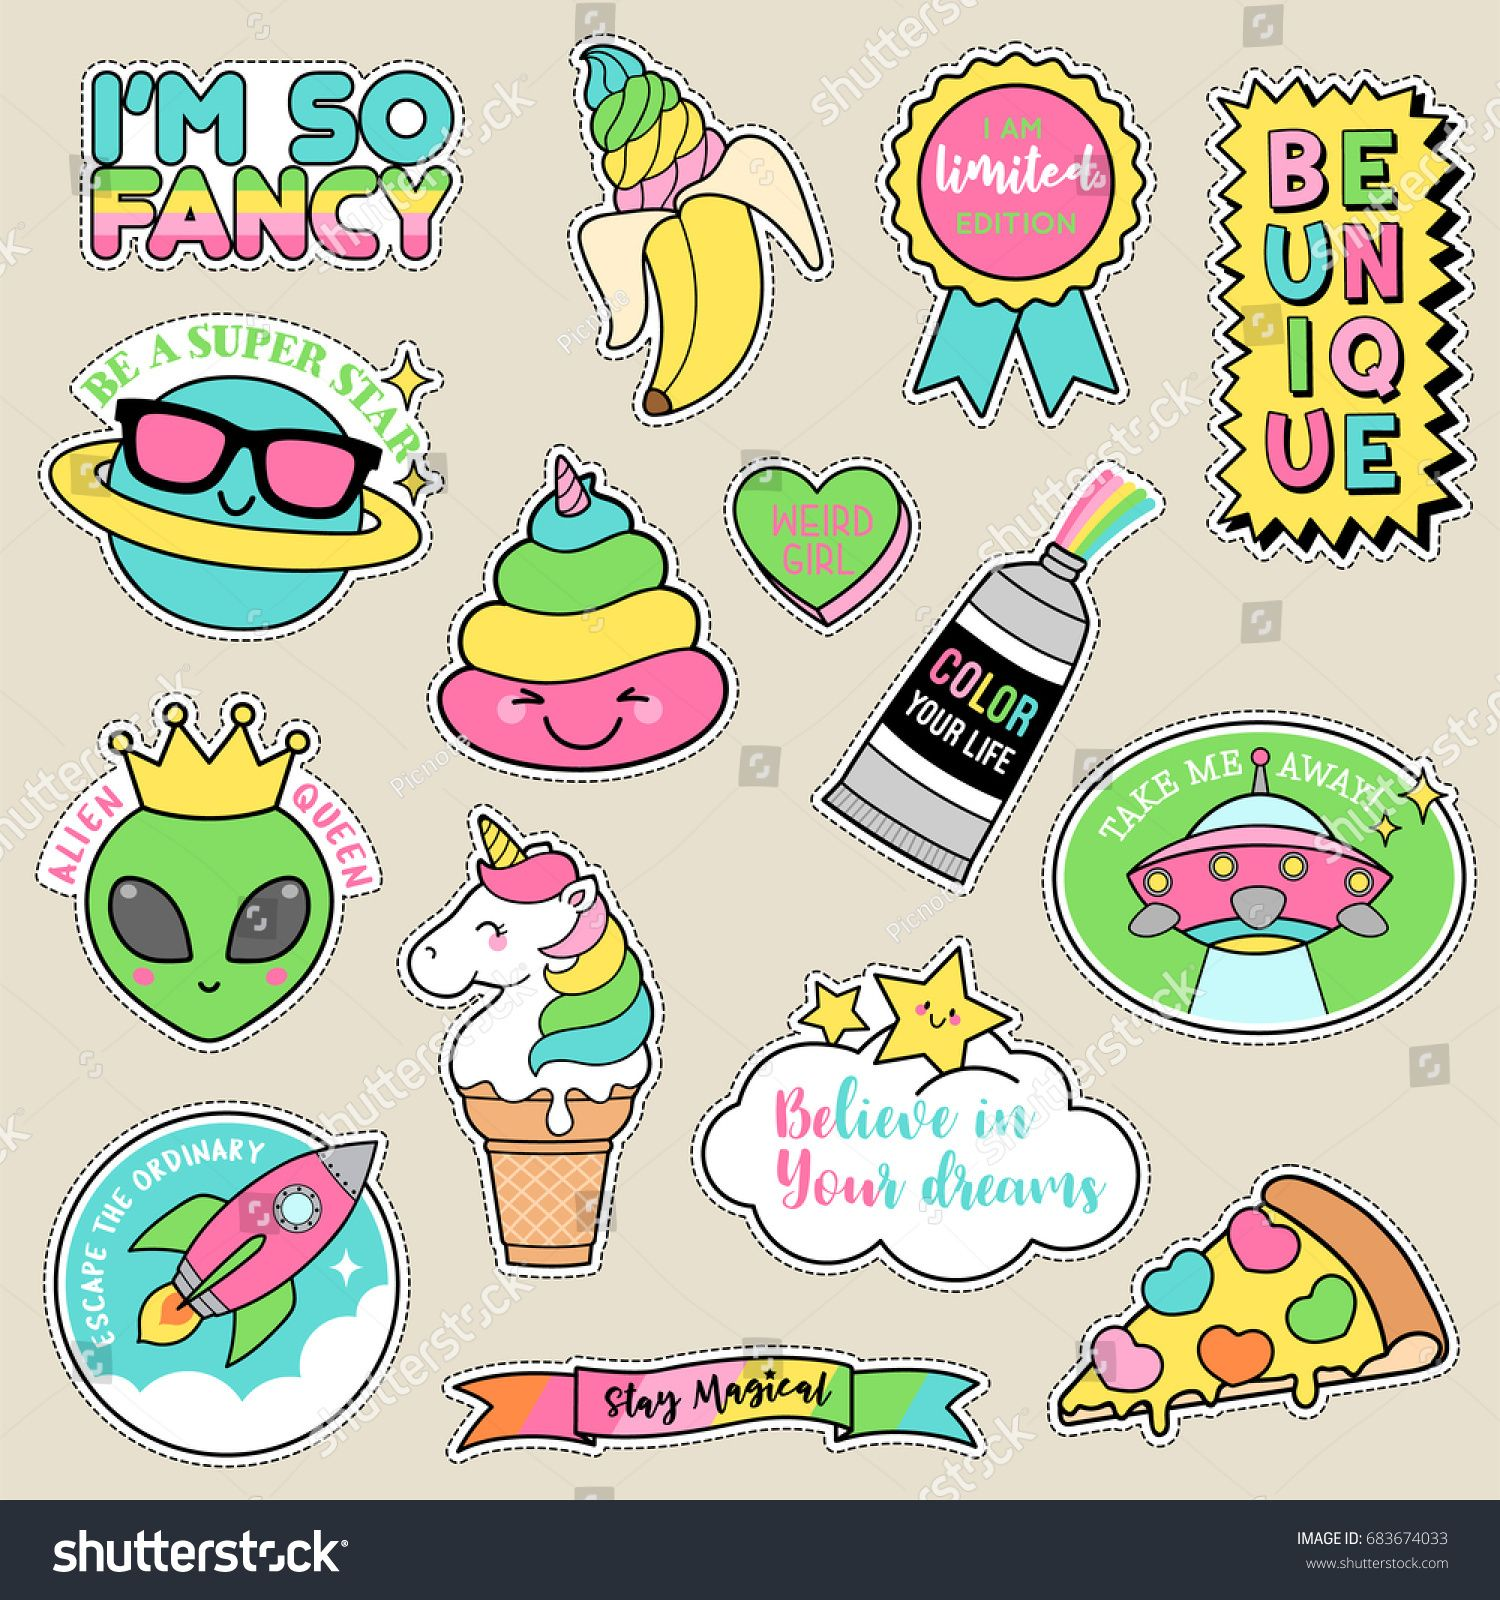 Set of fashion patches, pastel badges, fun cartoon icons